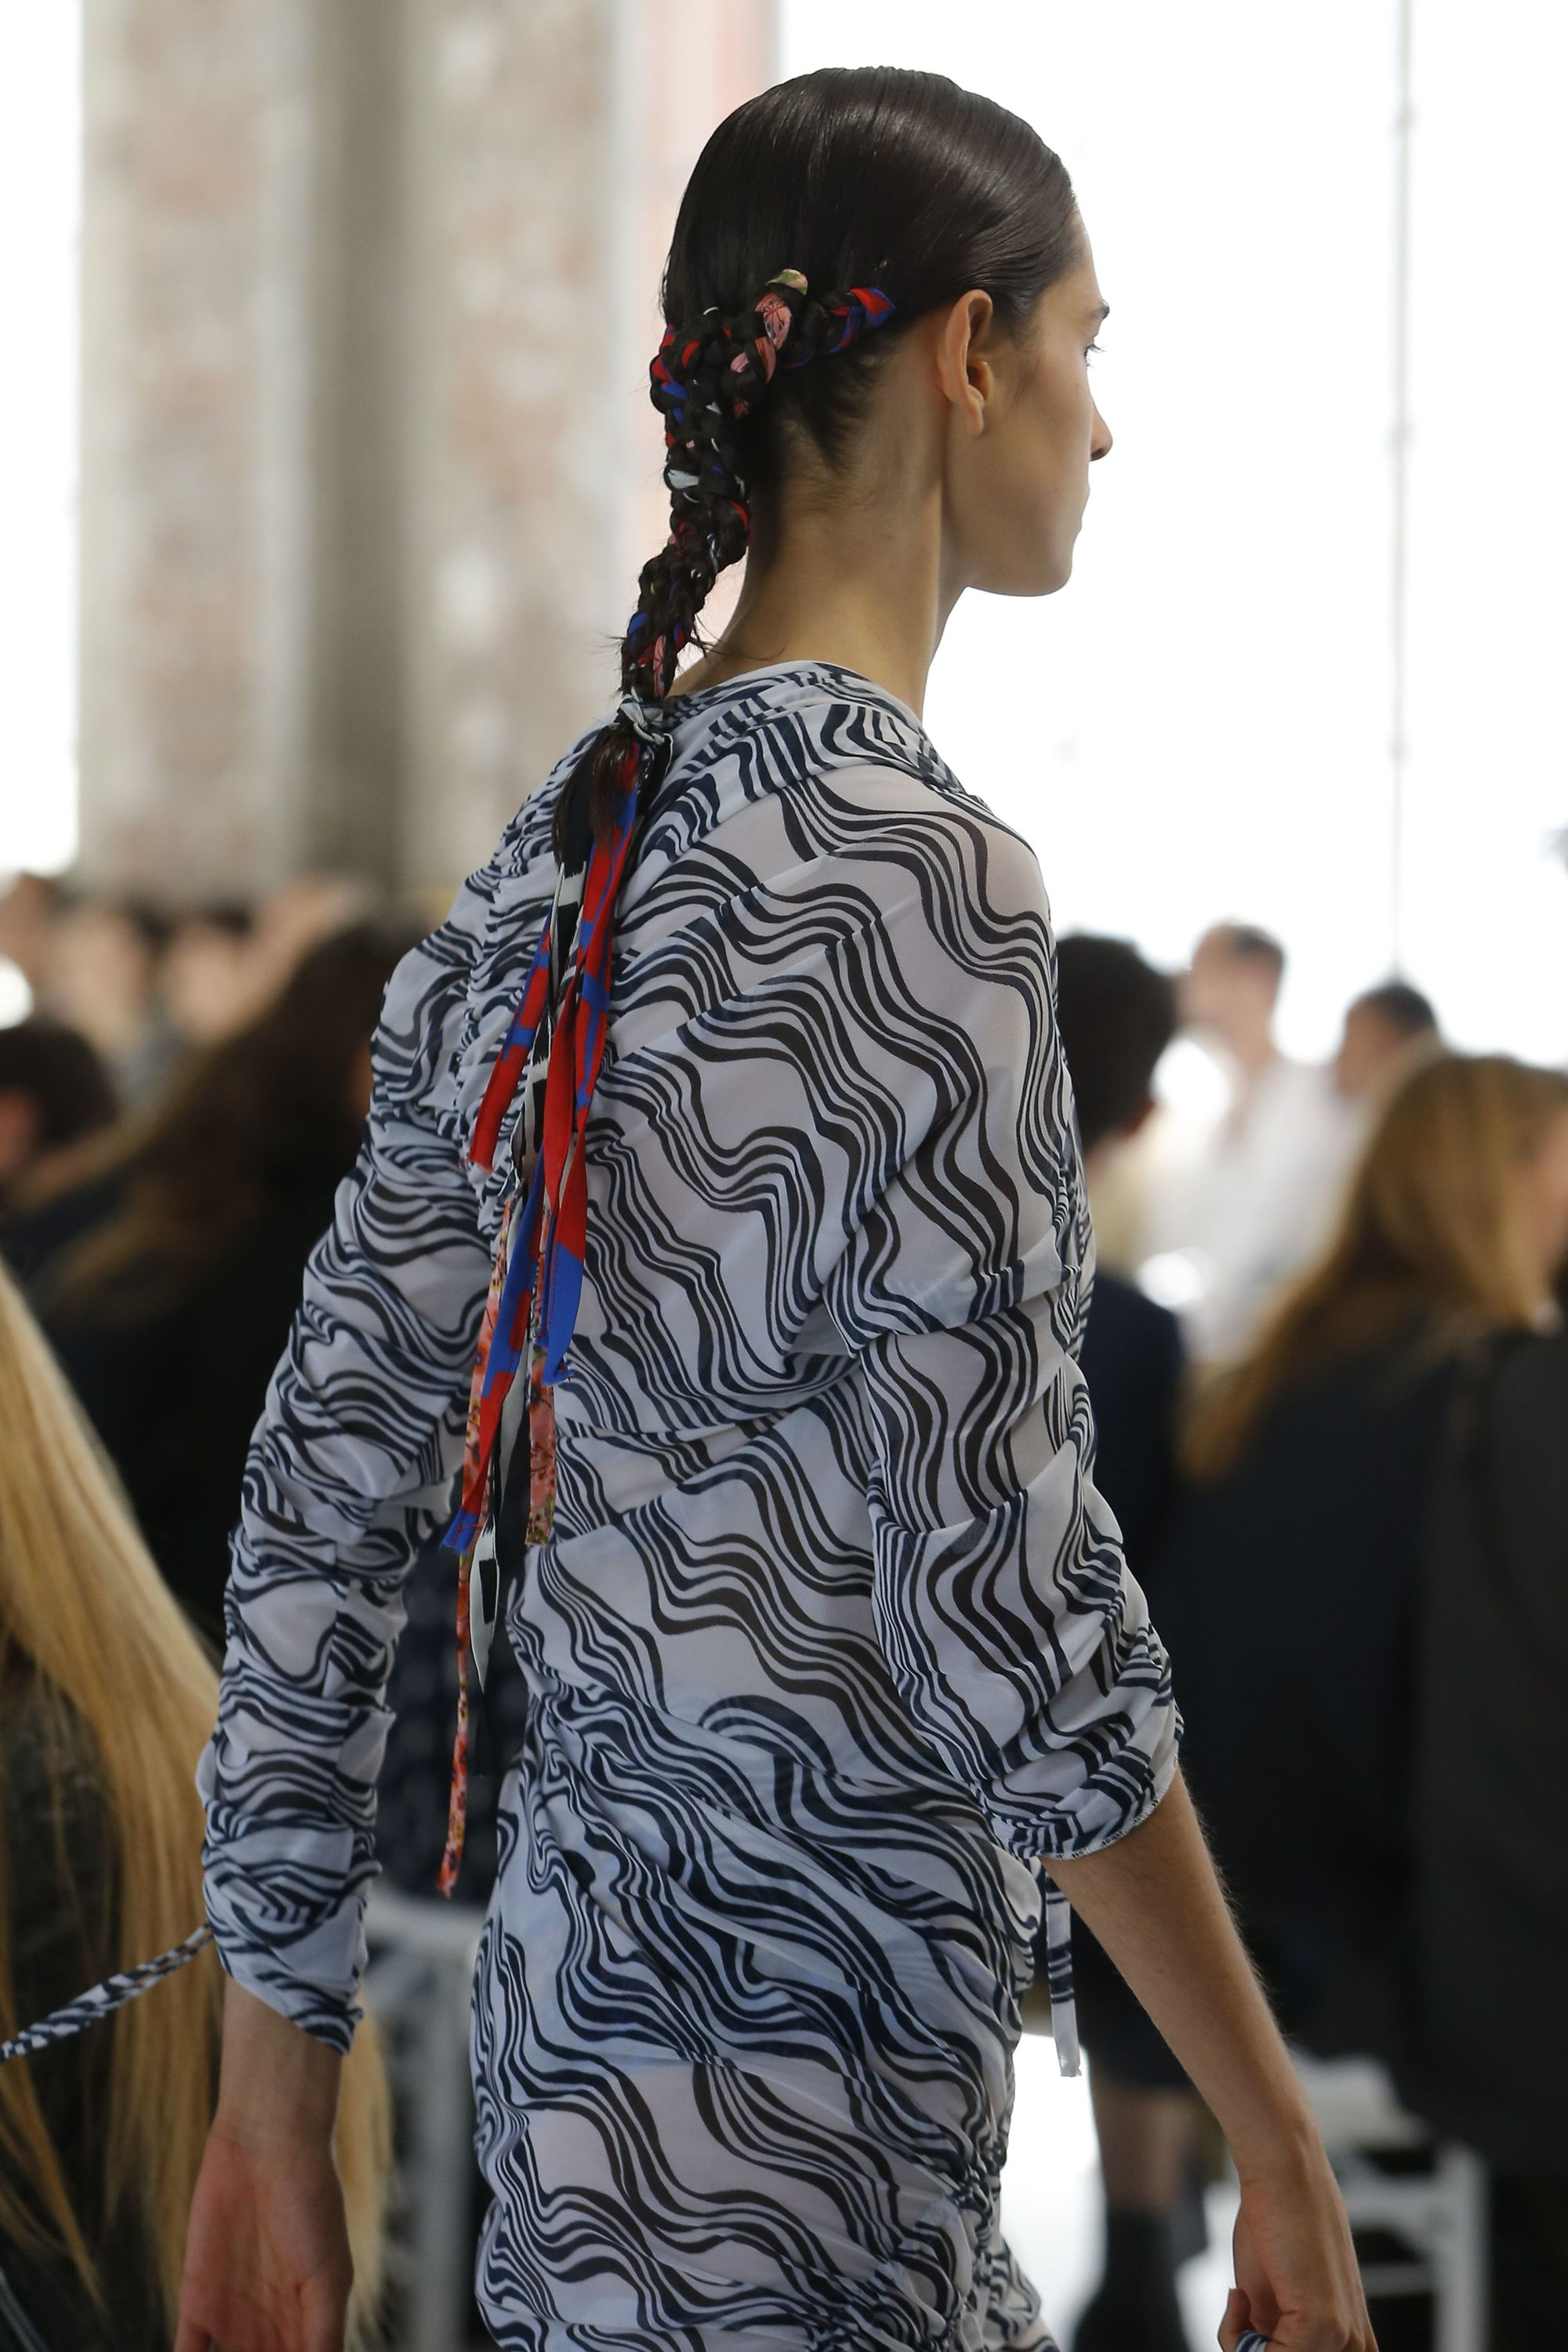 Headband and bandana hairstyles: Model with long brown hair in scarf braid on Atlein SS19 runway.